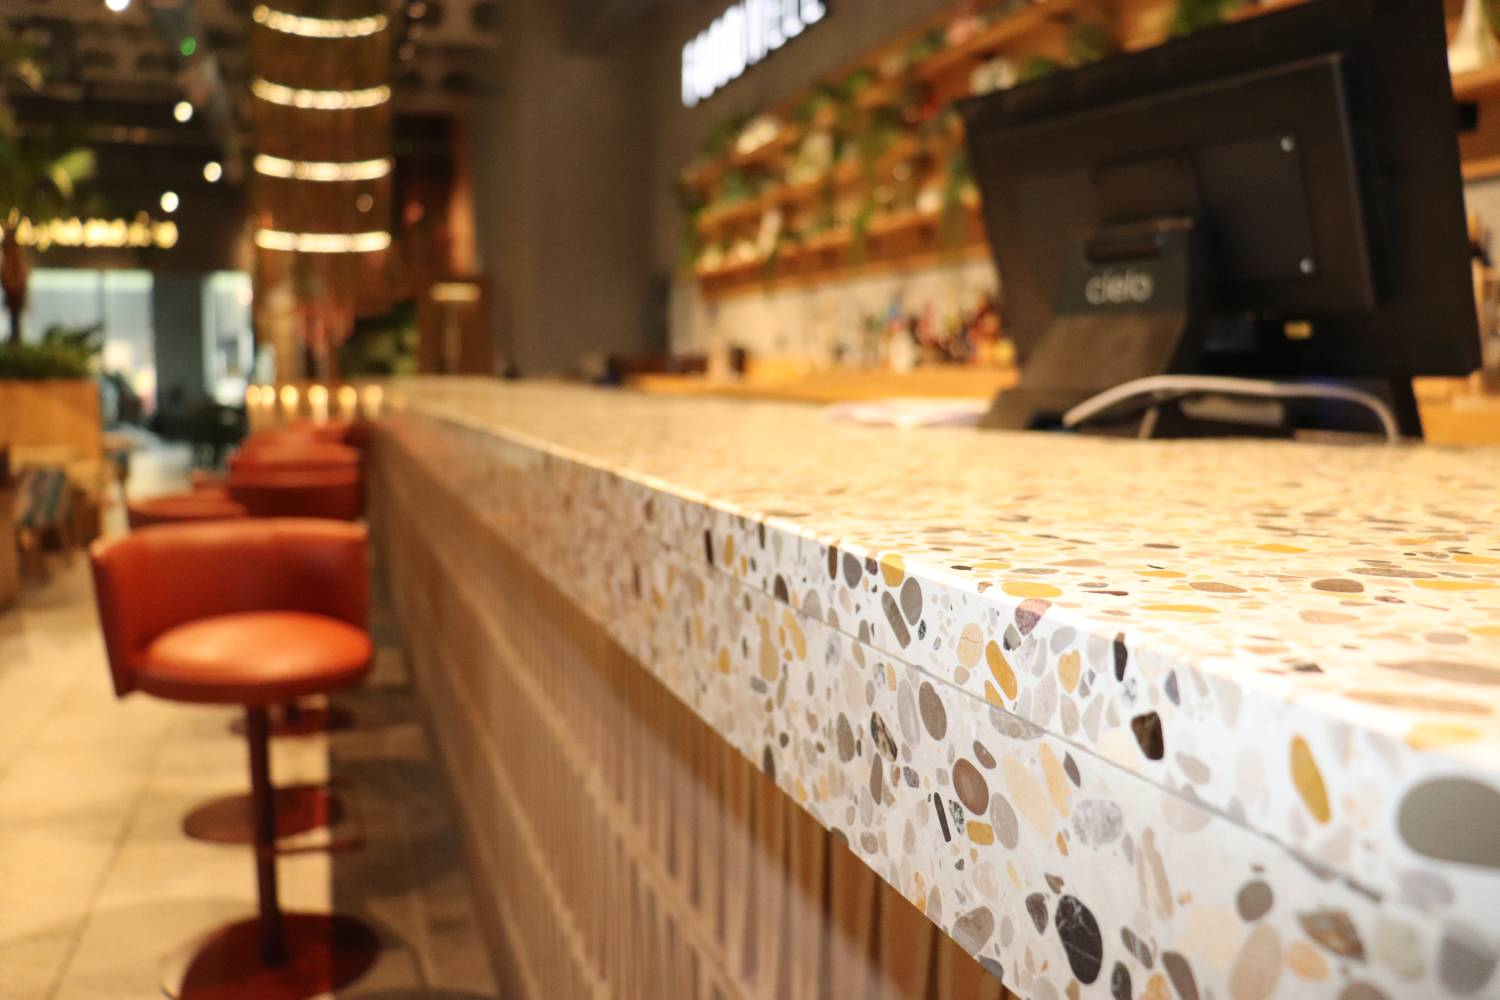 Terrazzo Worktops at Foodwell Restaurant Deansgate Manchester